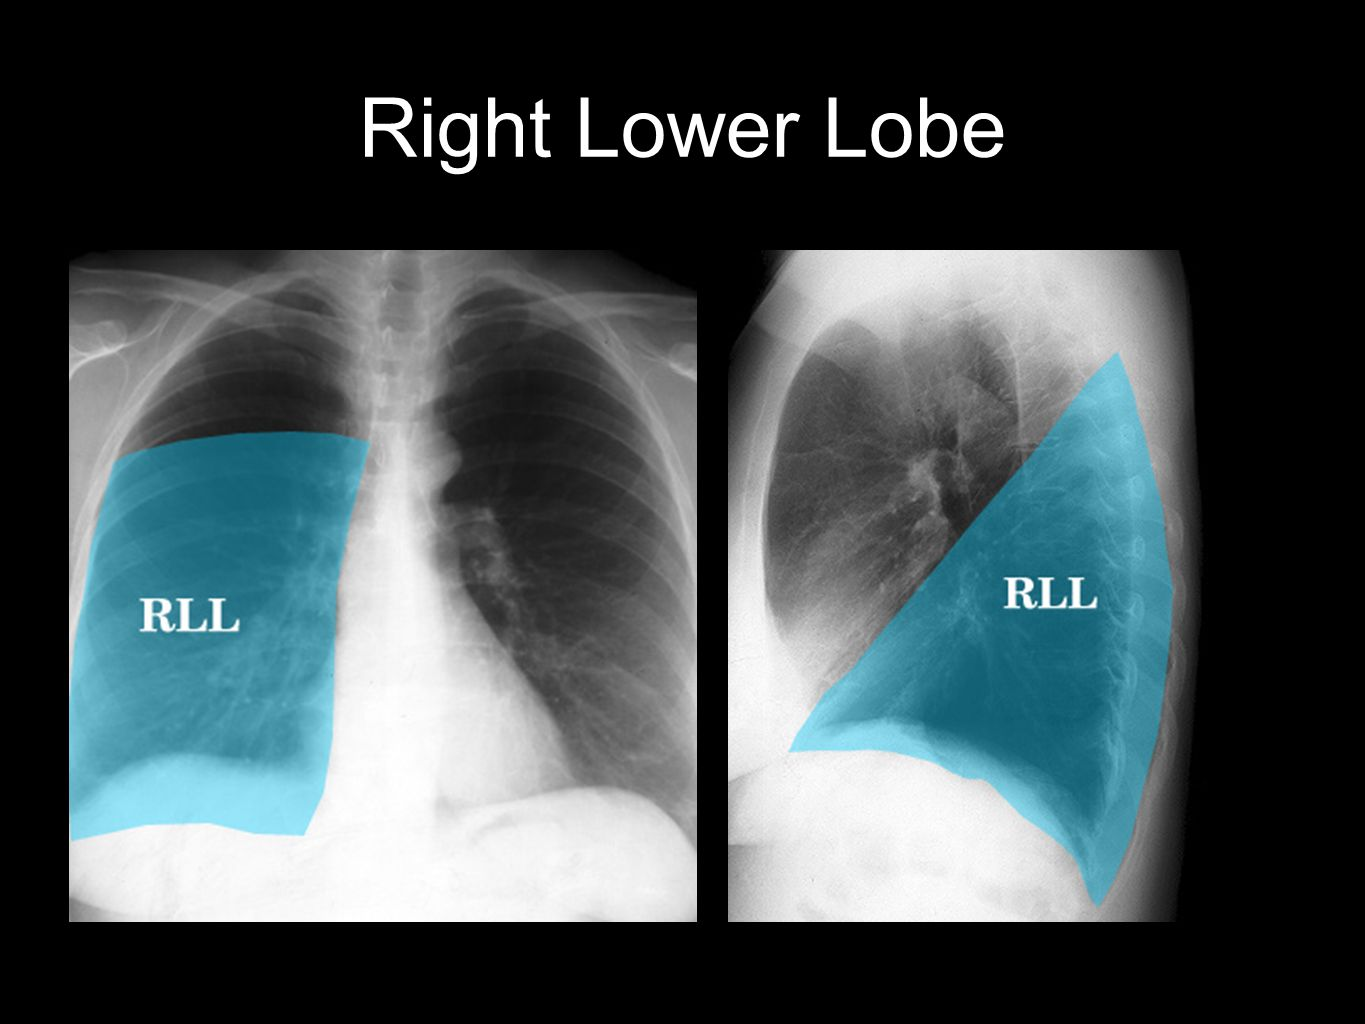 Right Lower Lobe